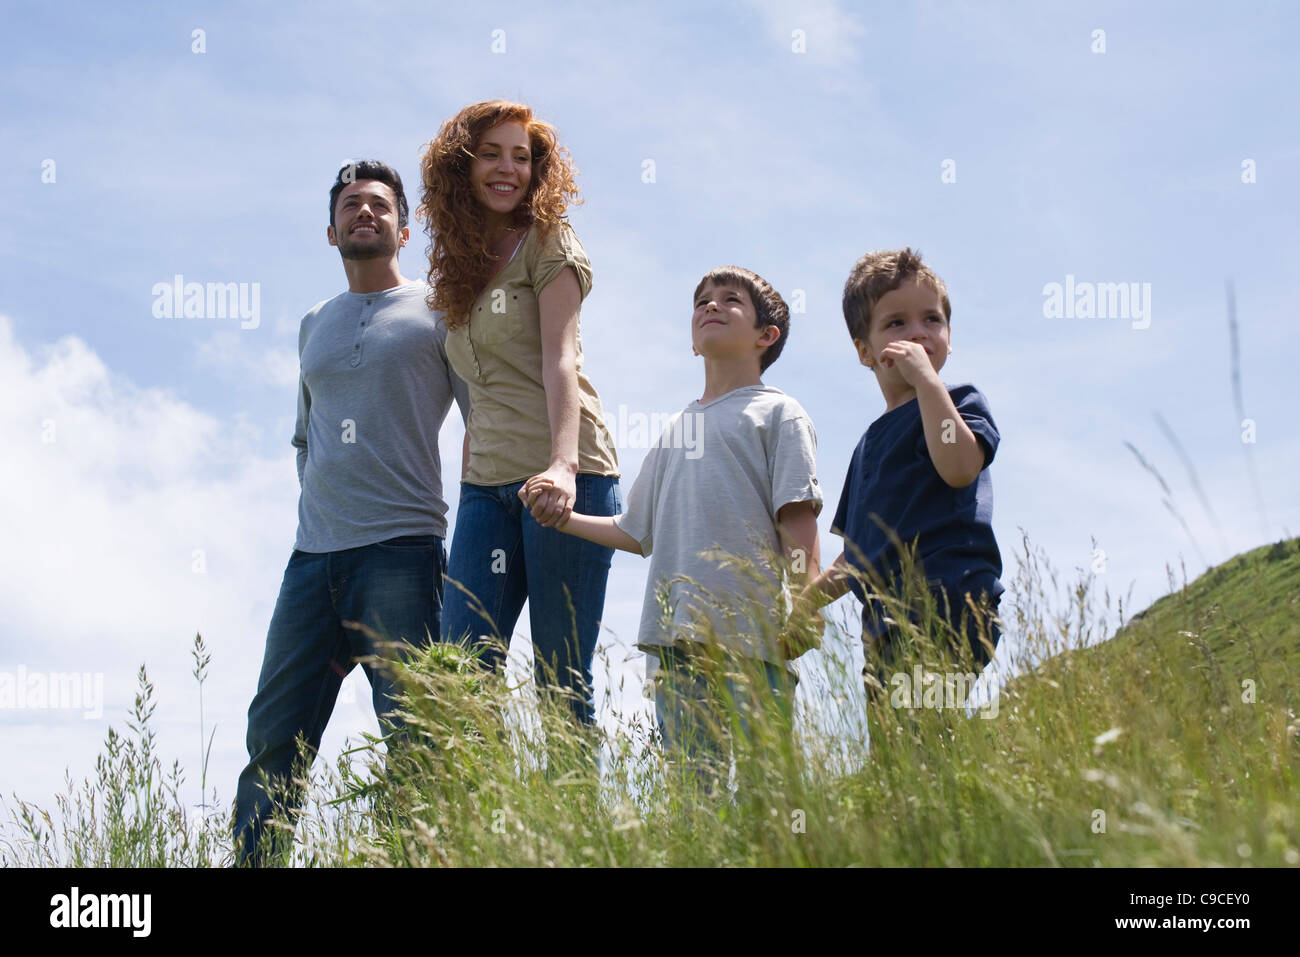 Parents and two boys standing on meadow holding hands - Stock Image